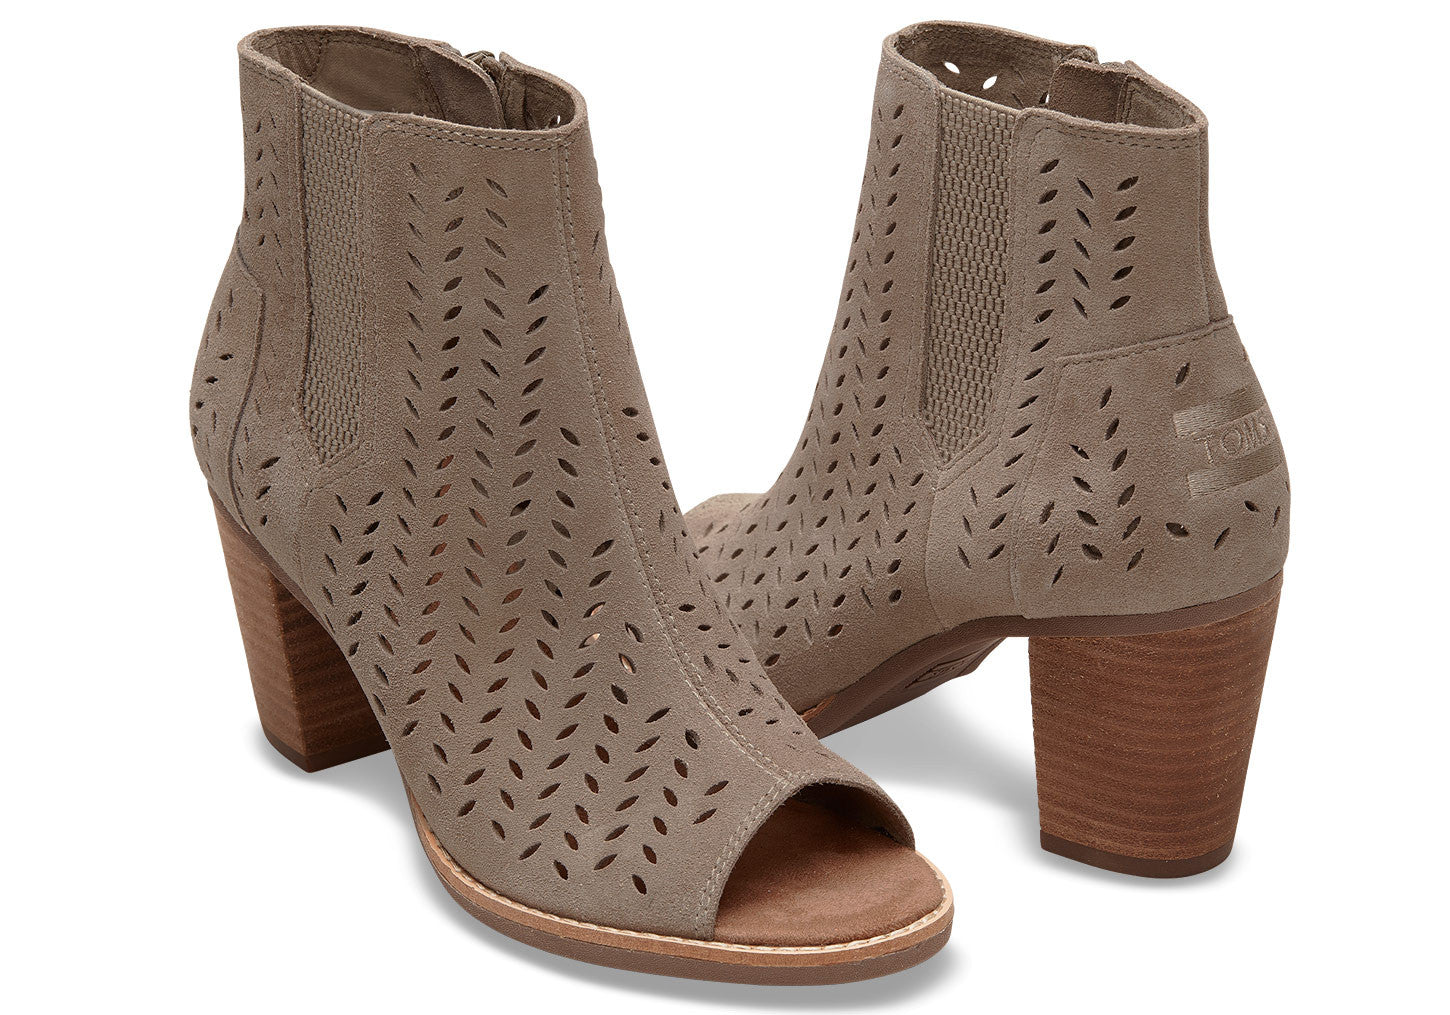 e2722cec73d TOMS DESERT TAUPE SUEDE PERFORATED LEAF WOMEN S MAJORCA PEEP TOE BOOTI - T.  Georgiano s